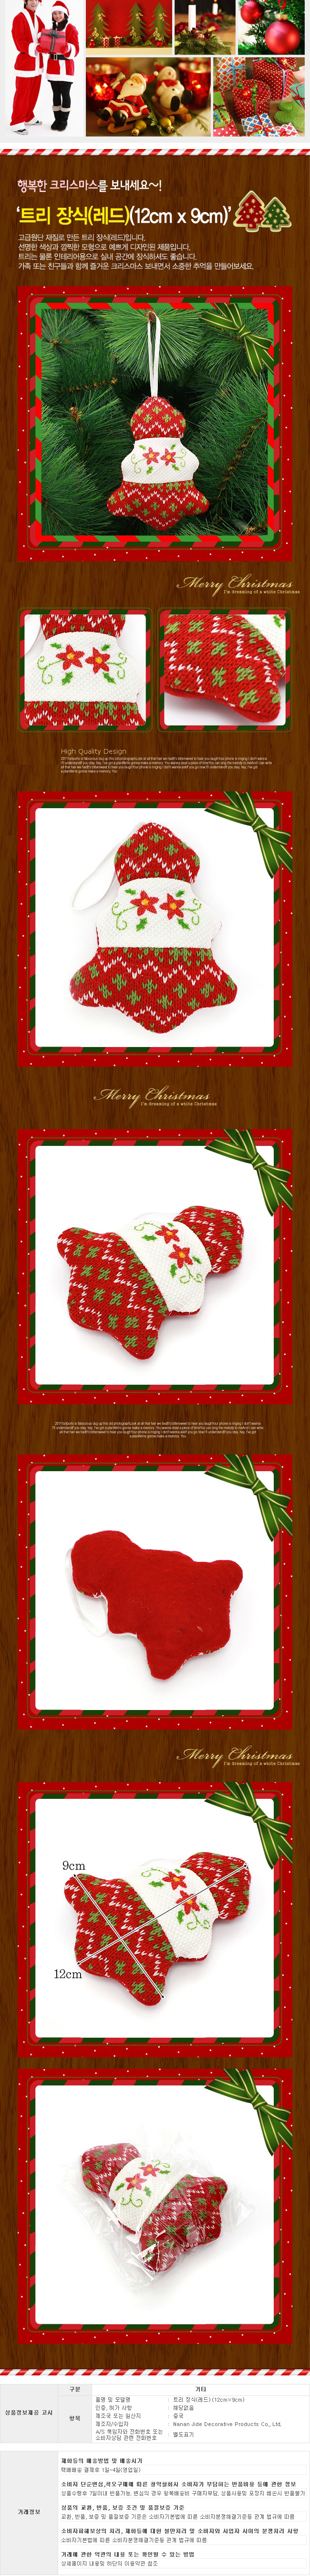 [ WINEQOK ] Christmas Goods / Red velvet with tree decoration ×